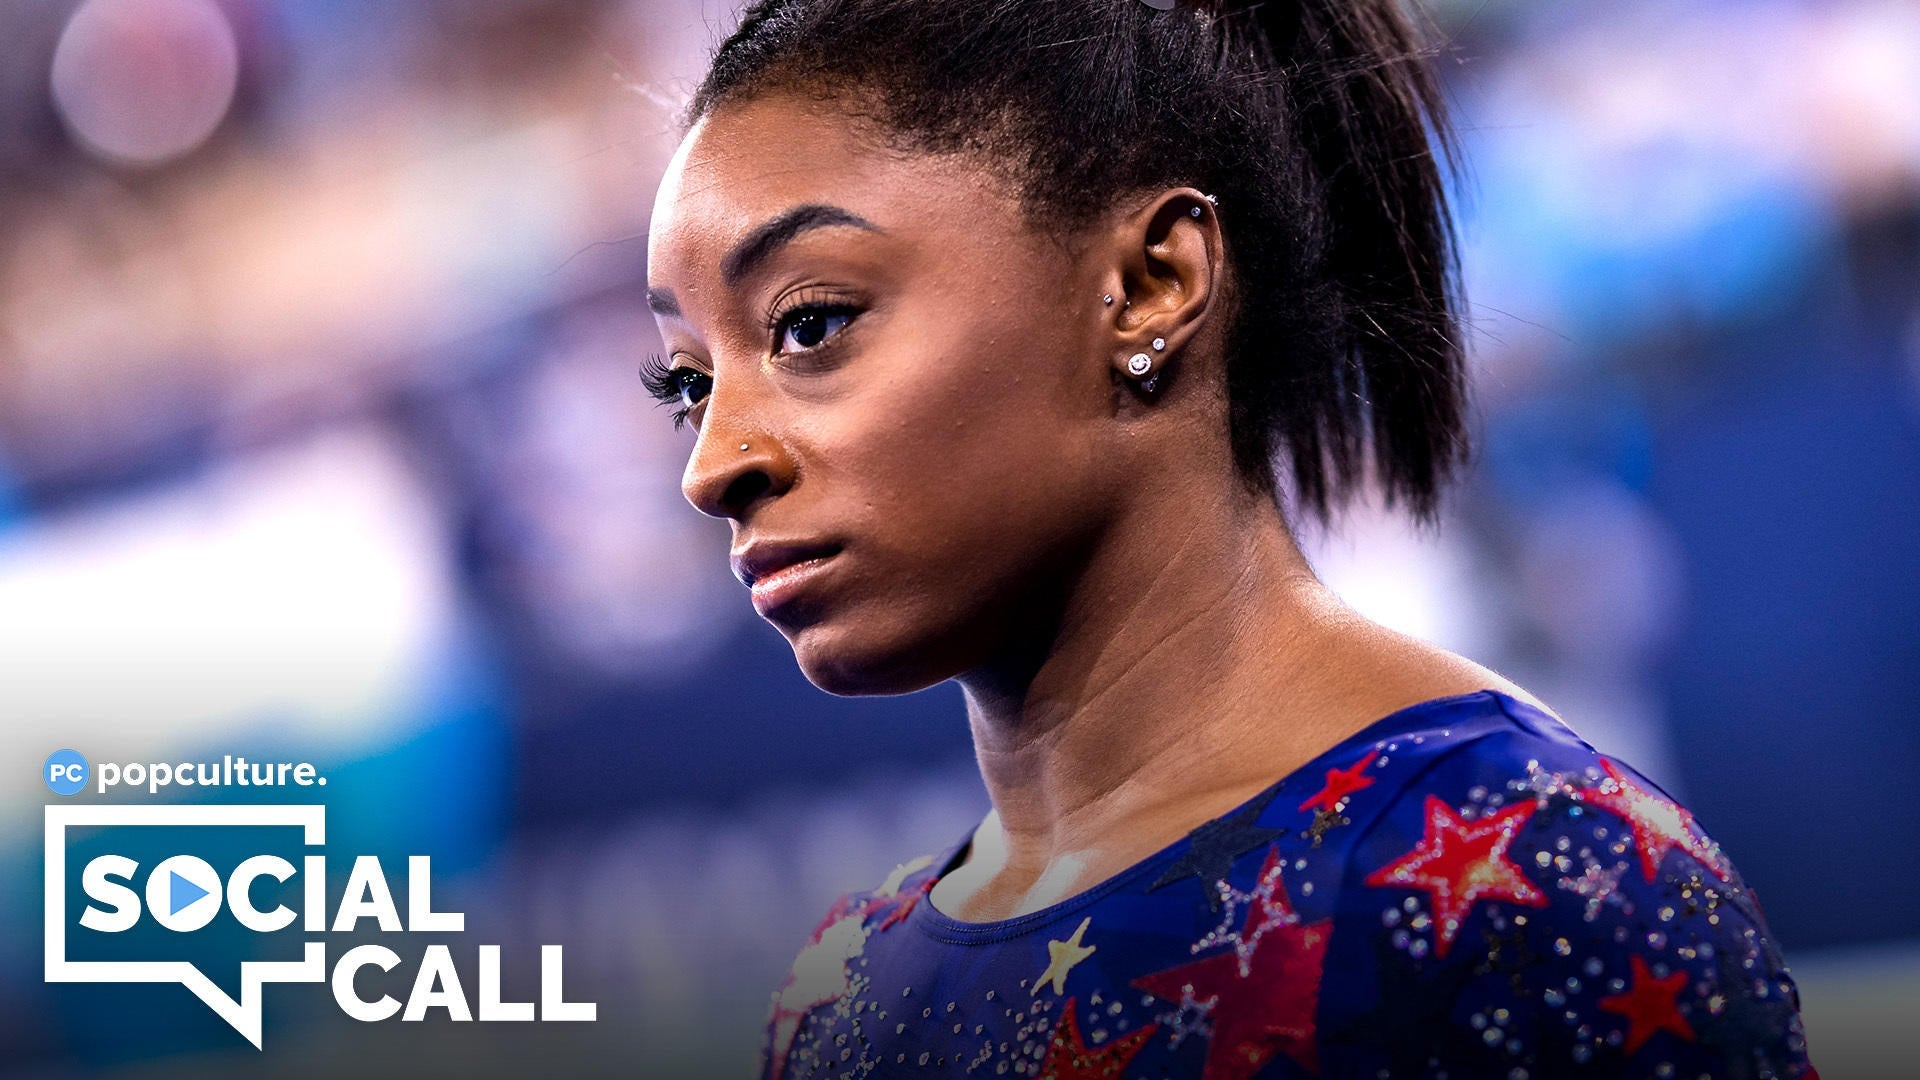 Popculture Social Call- Simone Biles Withdraws From Tokyo Olympics Individual All-Around Finals